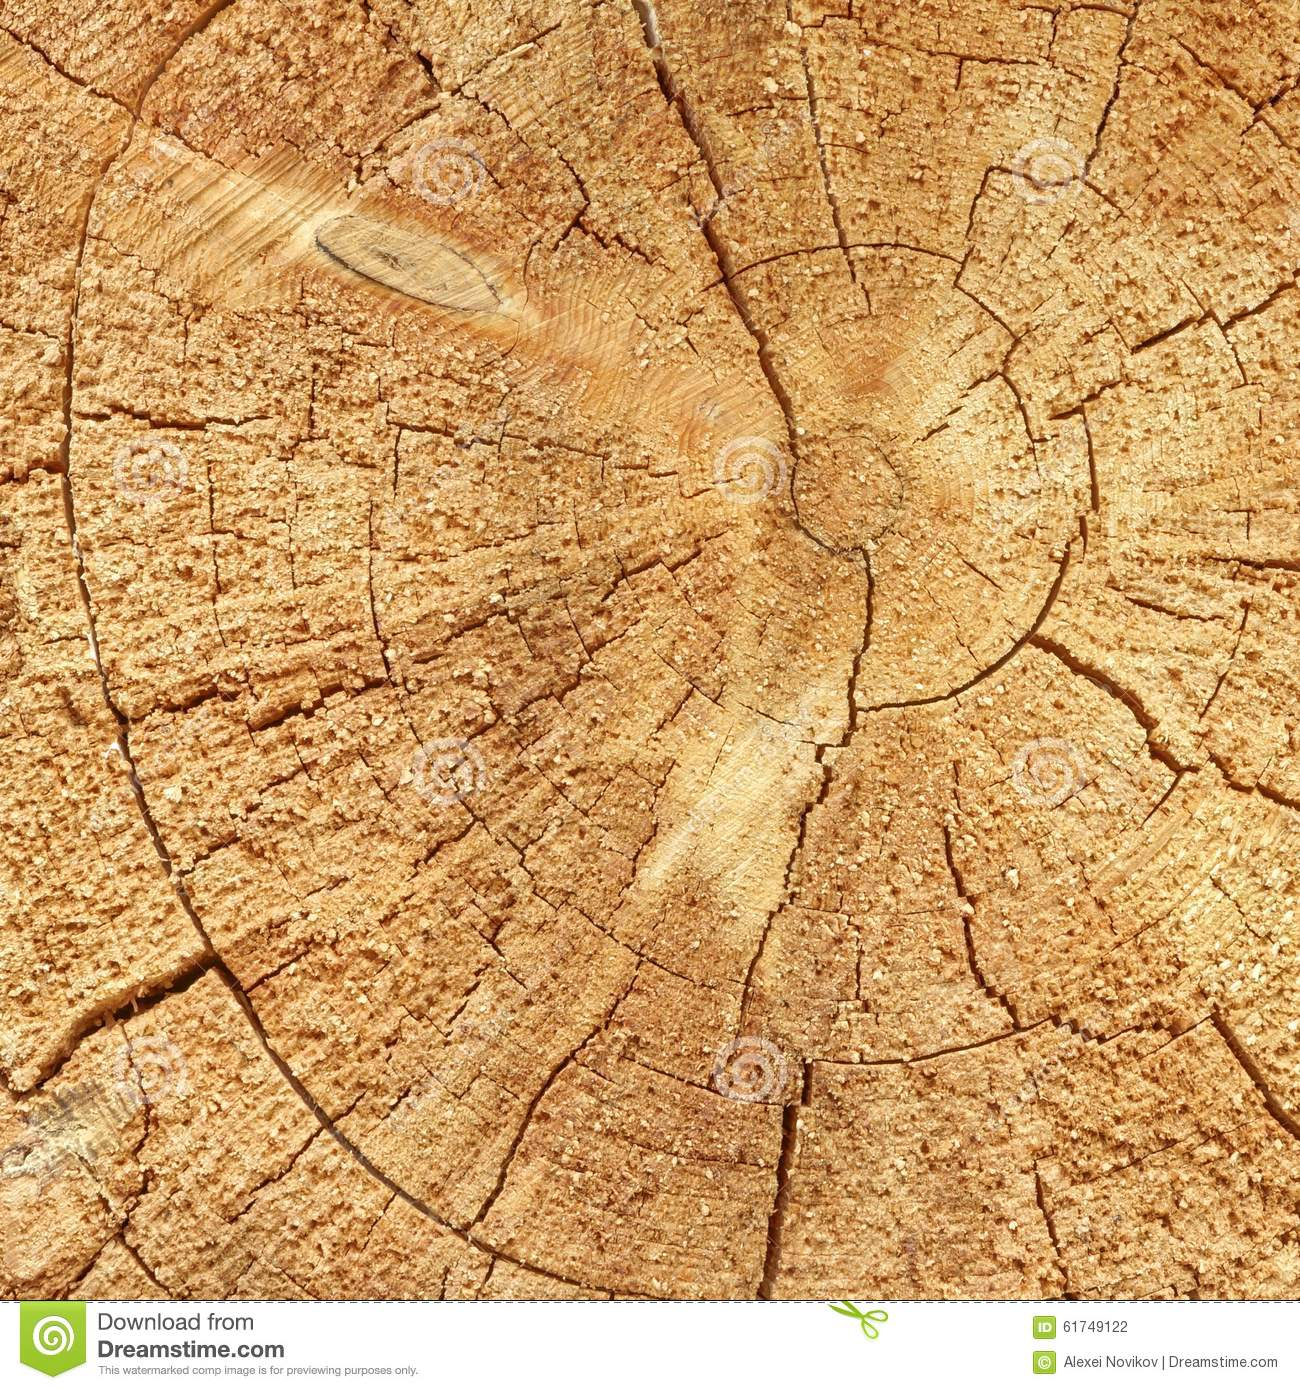 Natural Old Wood Grain Log Square Frame Texture Close-Up Stock Photo ...